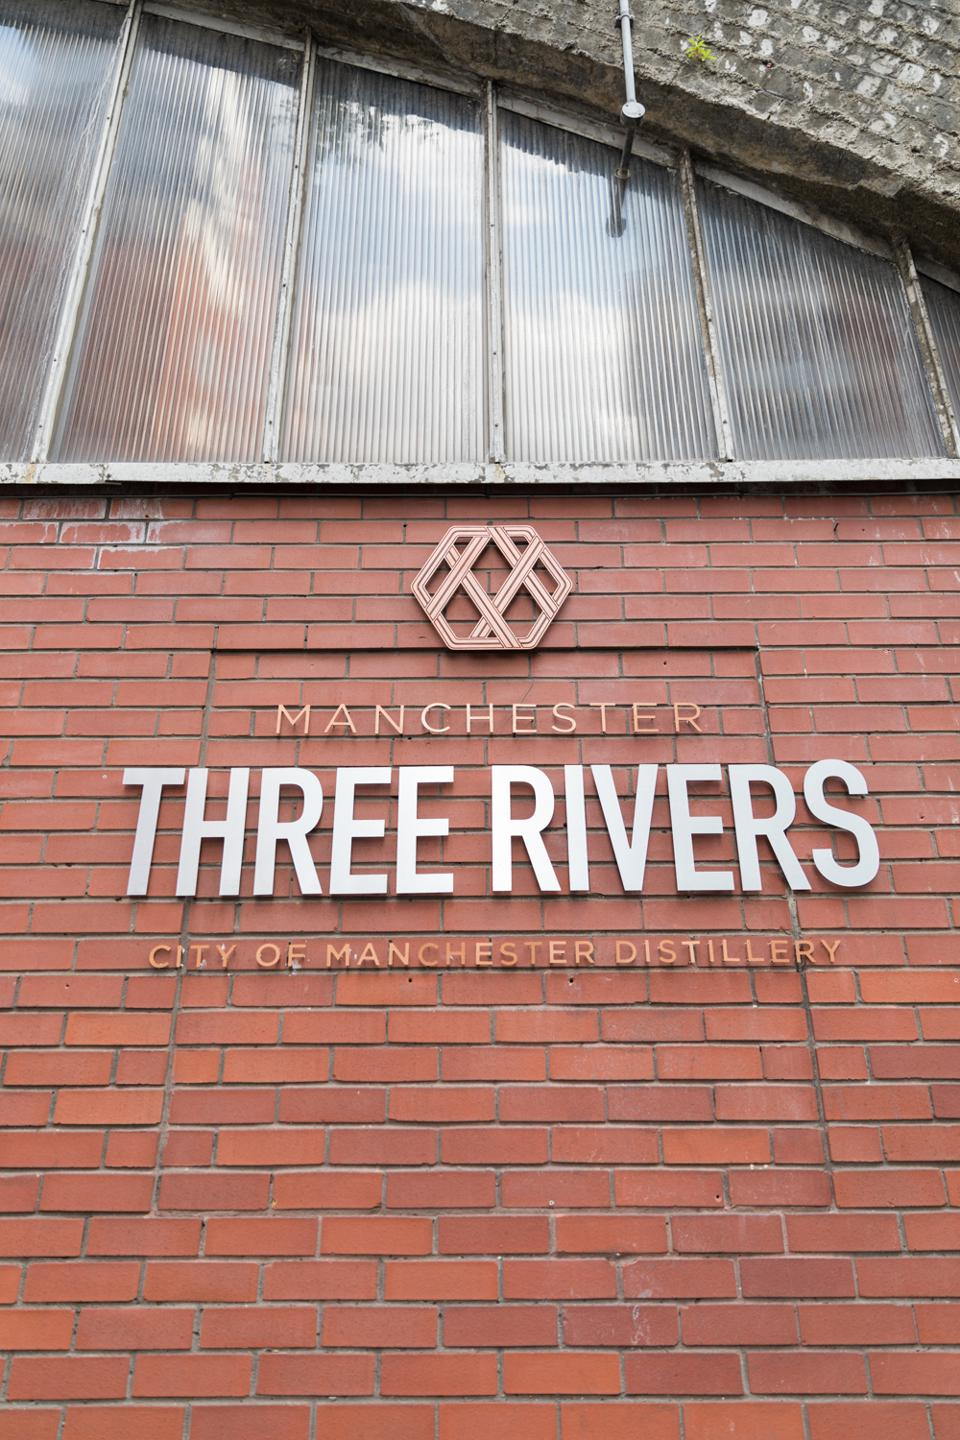 The outside of the City of Manchester Distillery